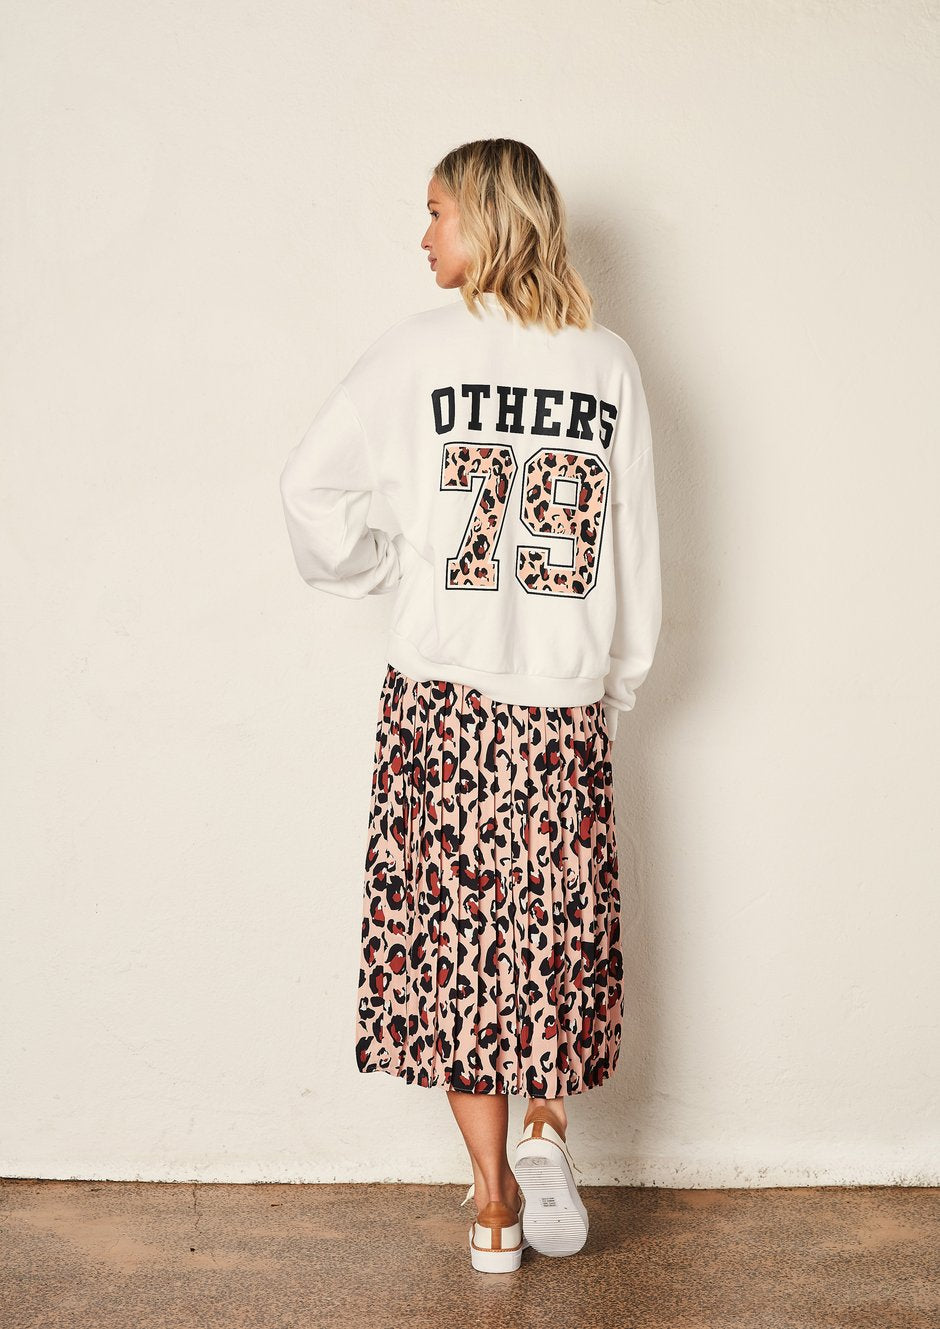 The Others - White Varsity Sweater